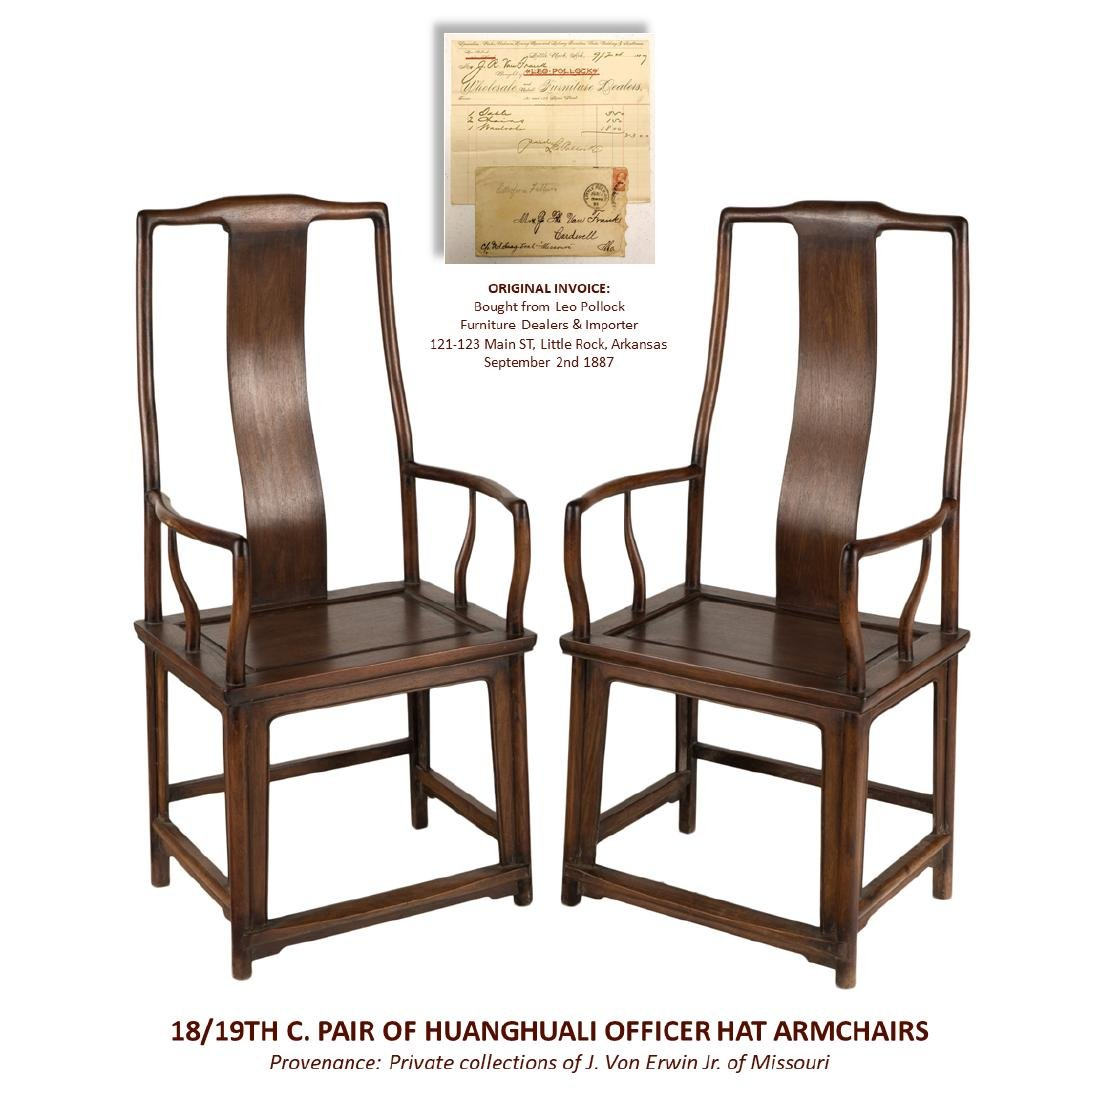 18/19TH C PAIR OF HUANGHUALI OFFICER HAT ARMCHAIRS